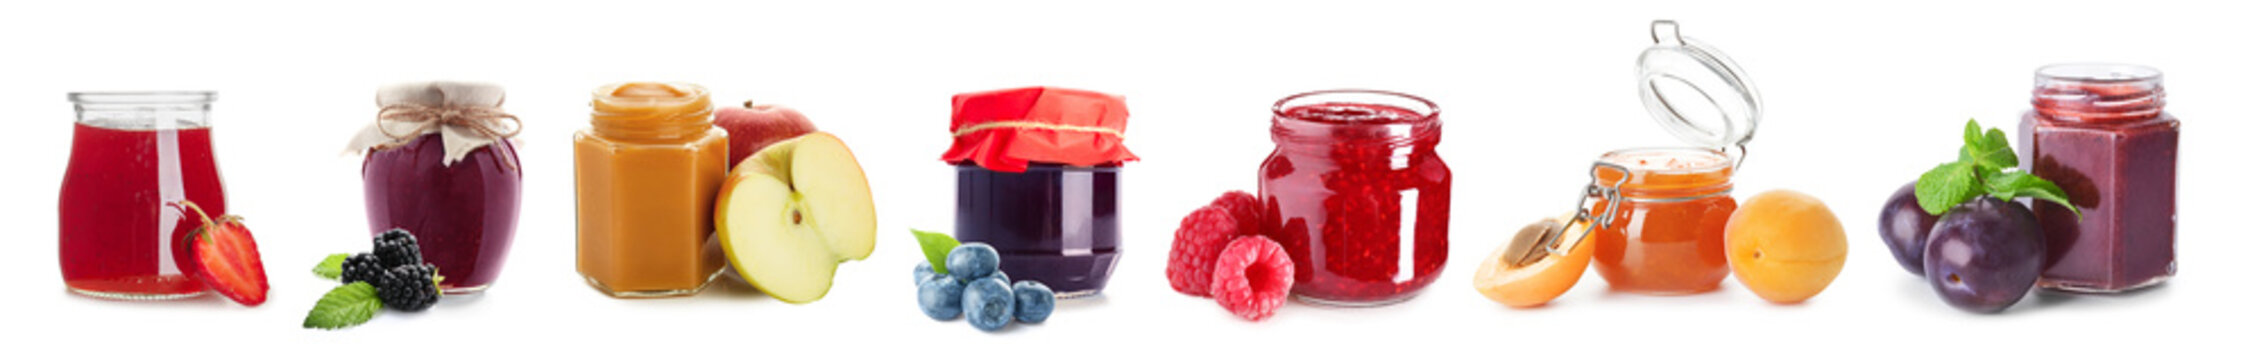 Different fruit jams in jars on white background